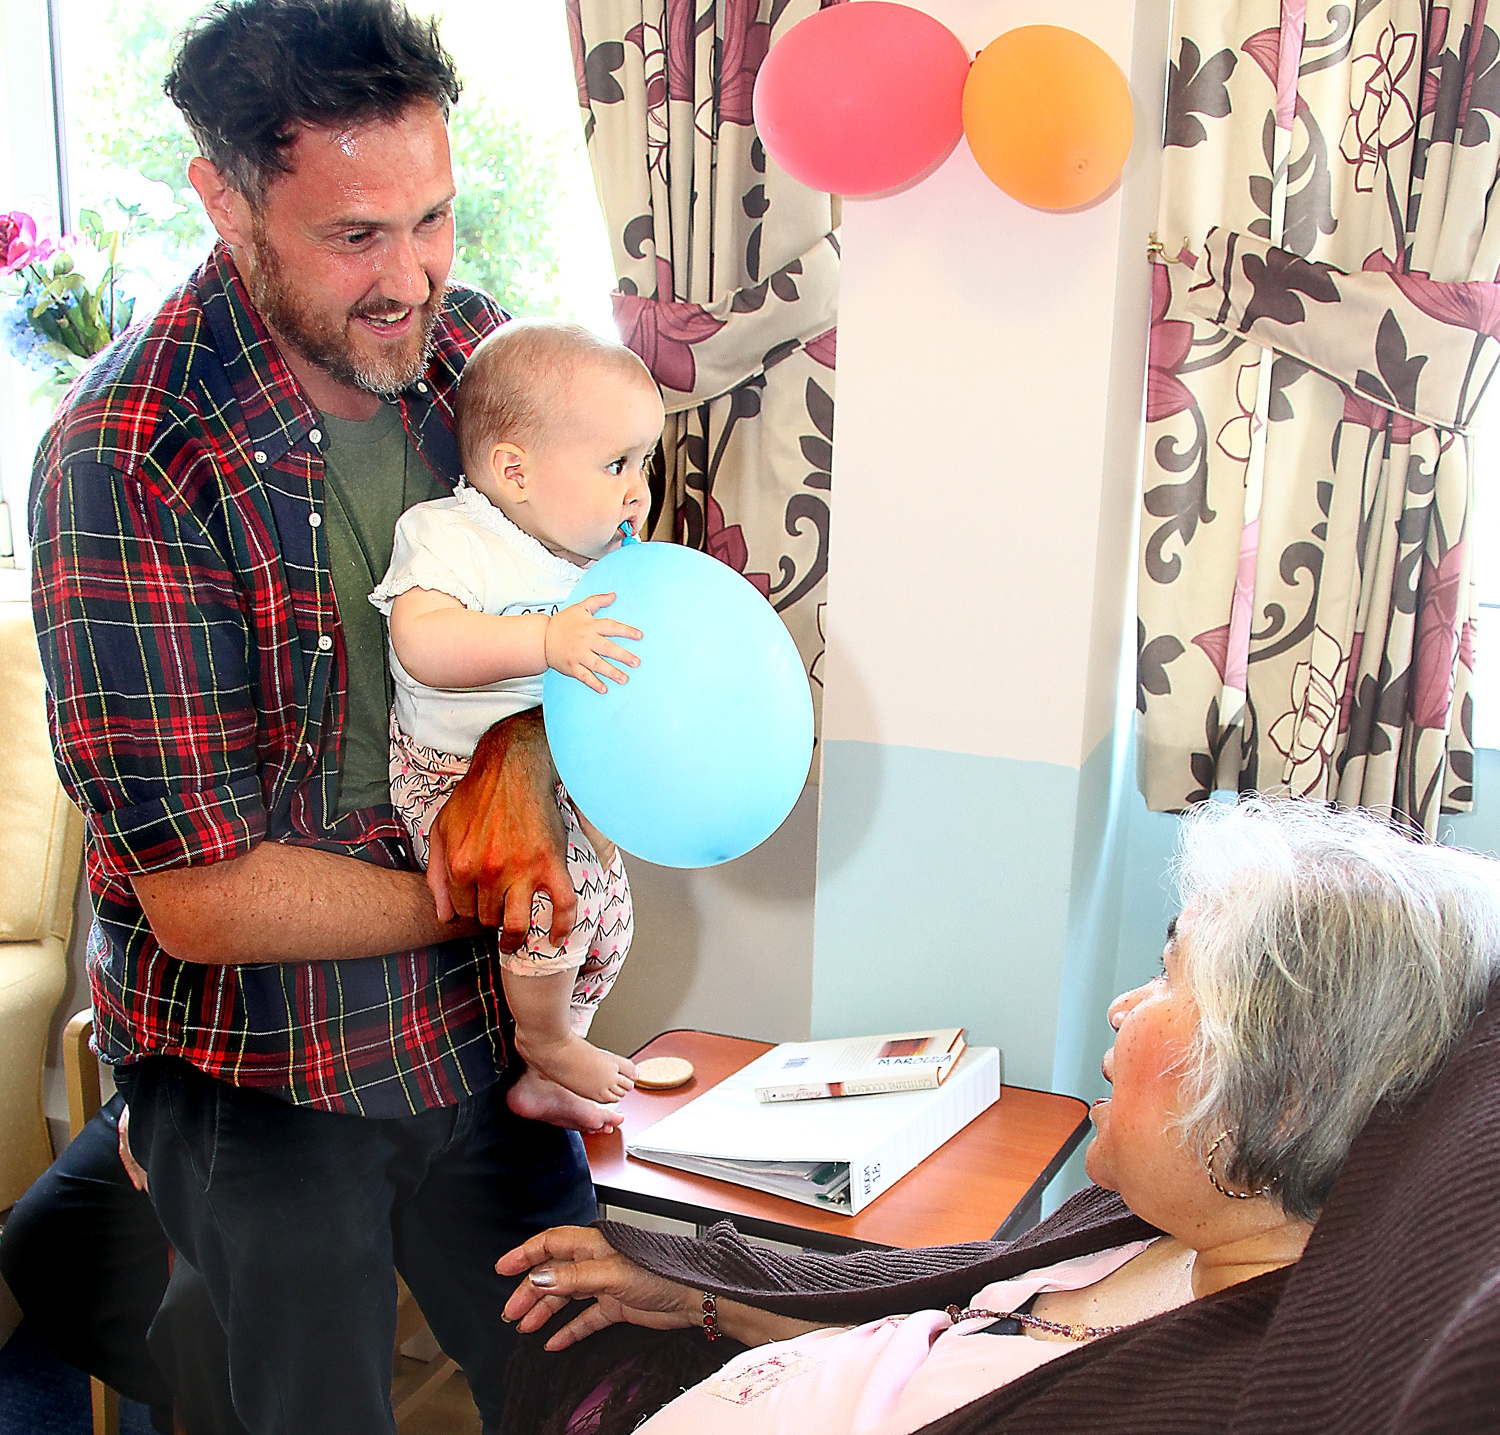 Sheila, Ross Wyld resident, with dad James and baby Beau